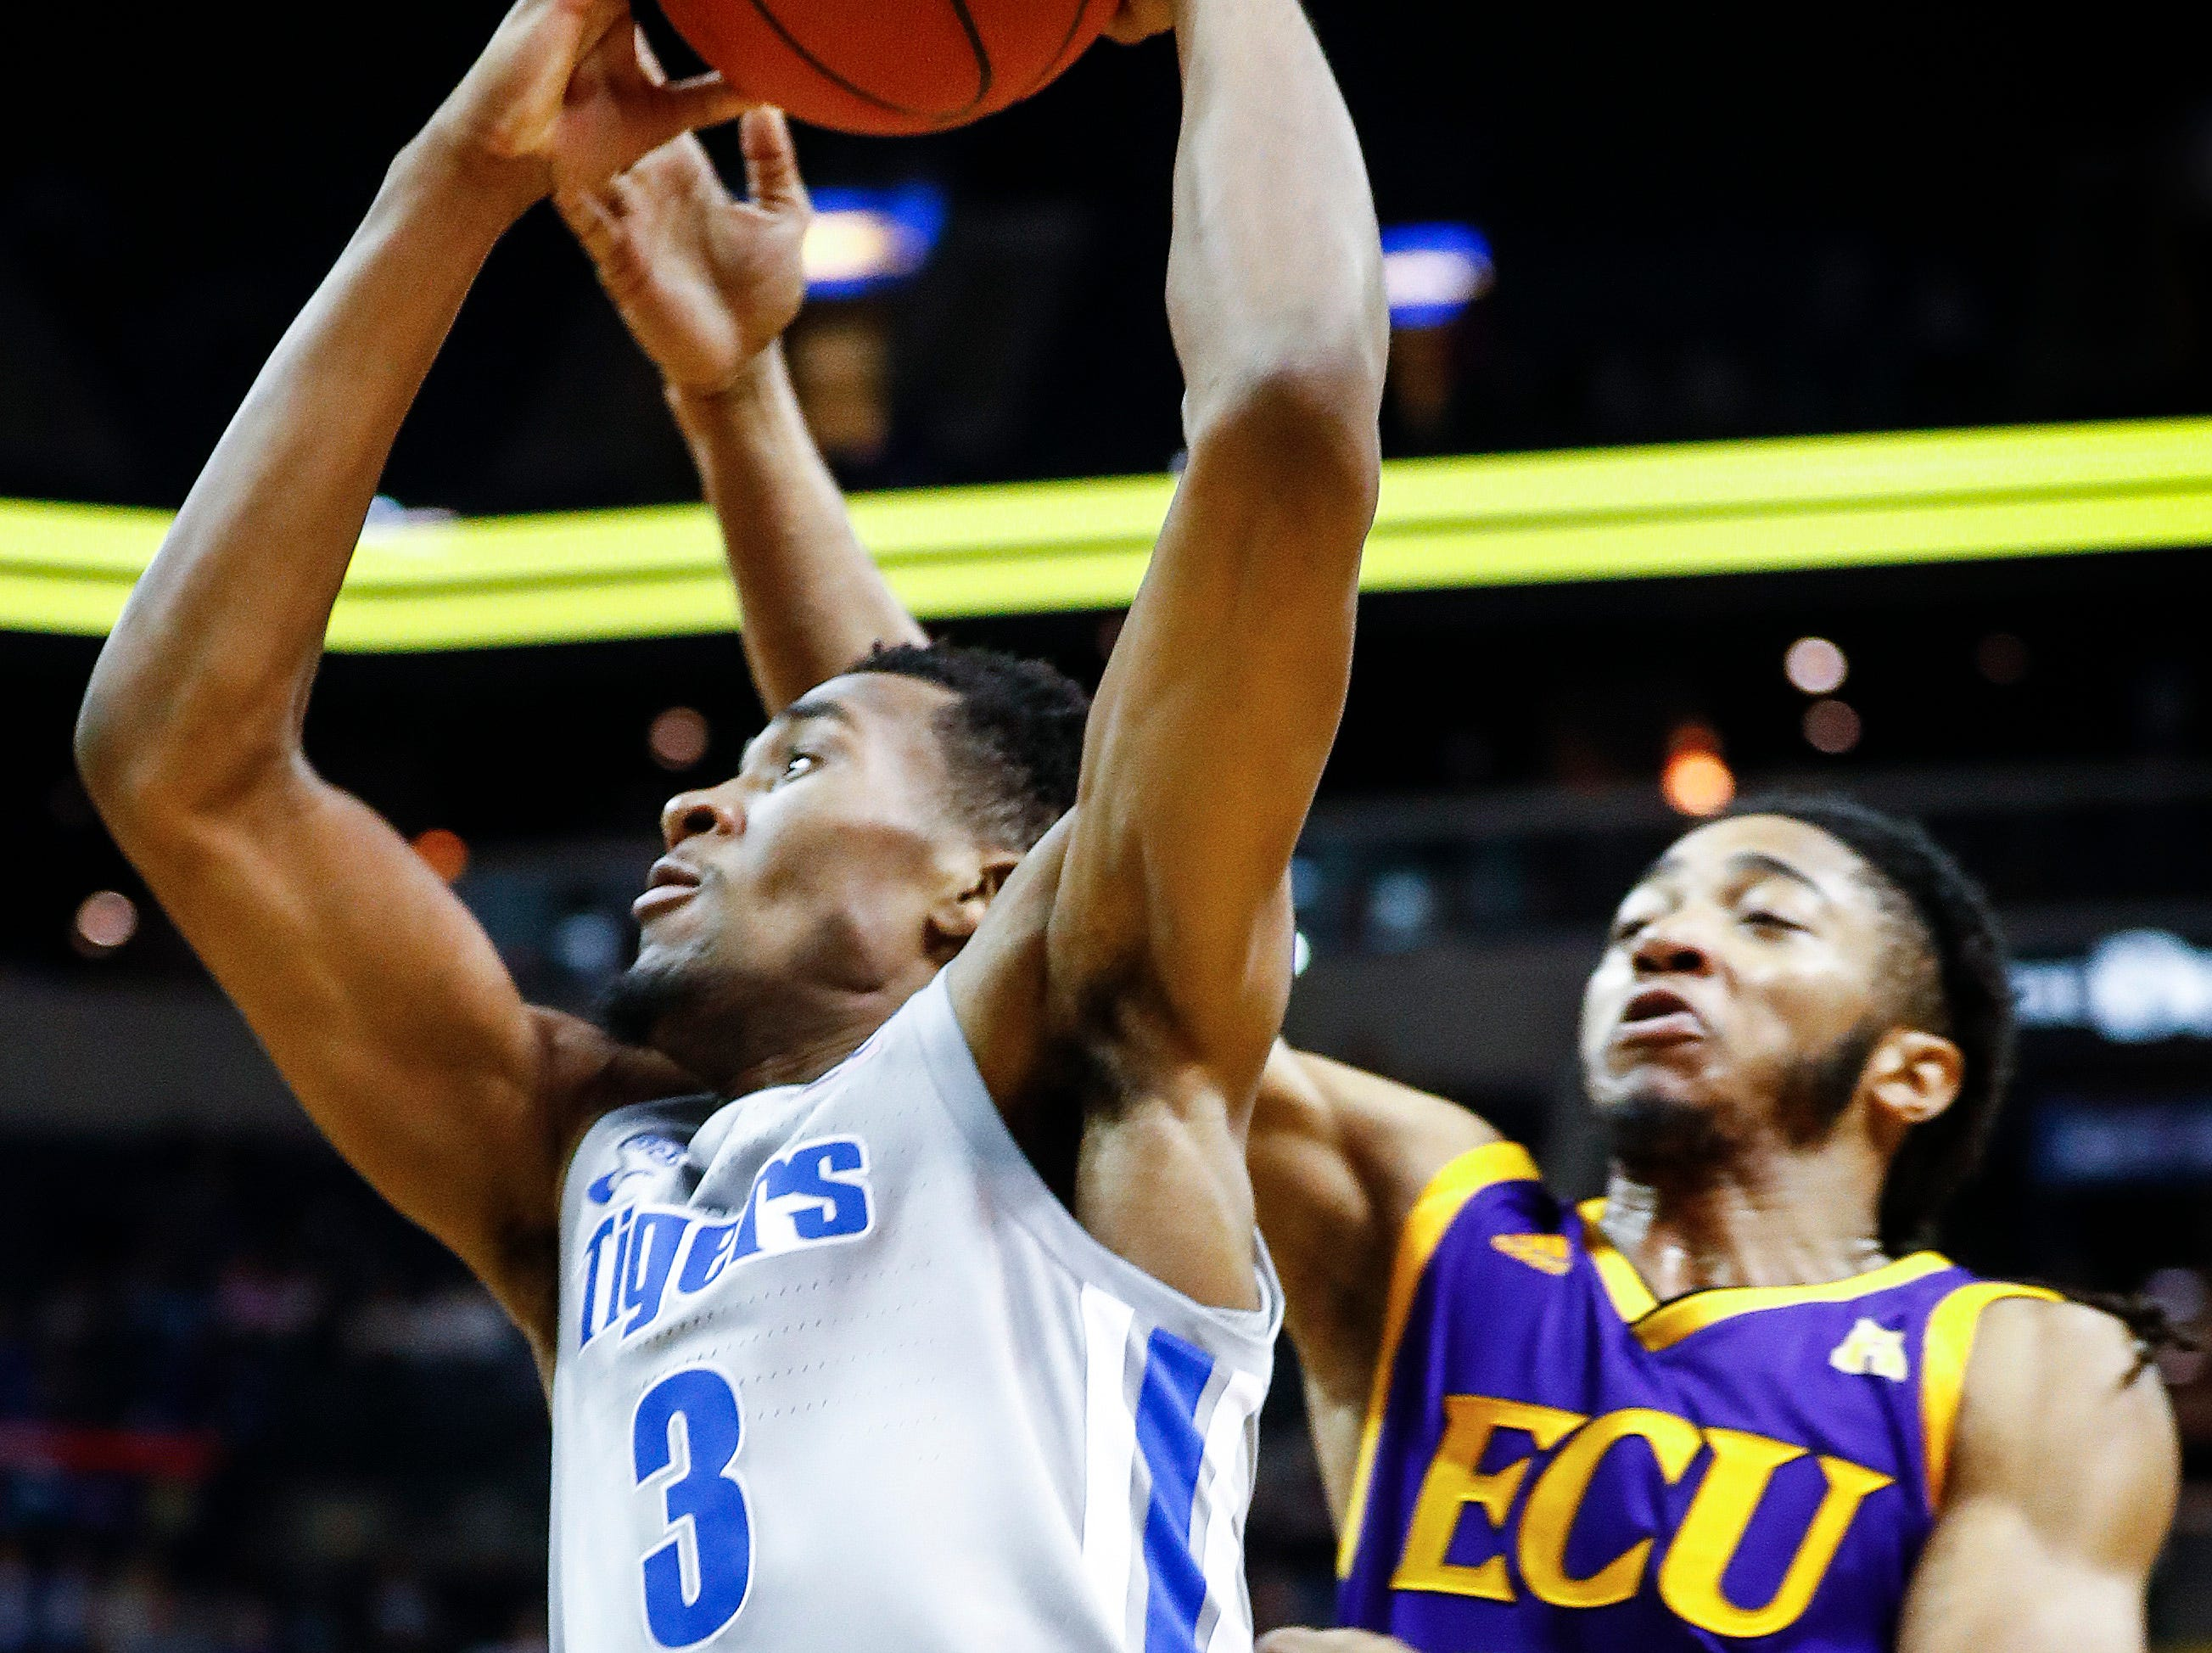 Memphis guard Jeremiah Martin (left) drives to the basket against ECU defender Shawn Williams (right) during action at the FedExForum, Thursday, January 10, 2019.